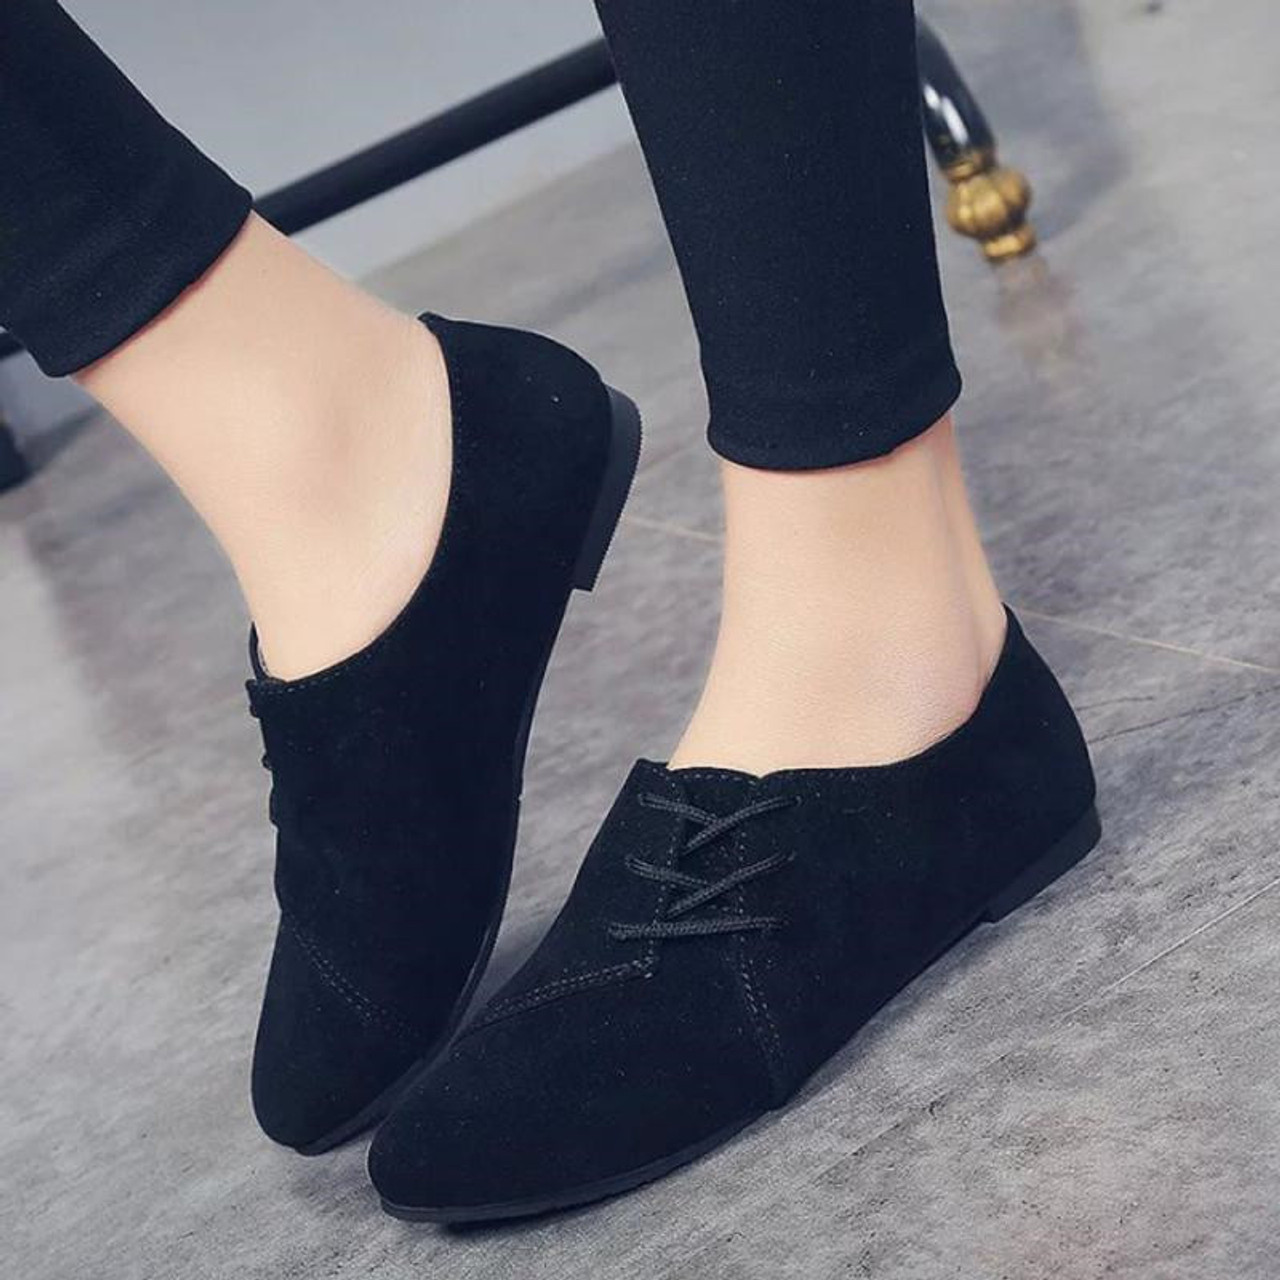 0992ed3d5162 ... Women Lace Up Flat Shoes Head Shoes Low To Help Flat Bottom Casual  Shoes Woman zapatos ...